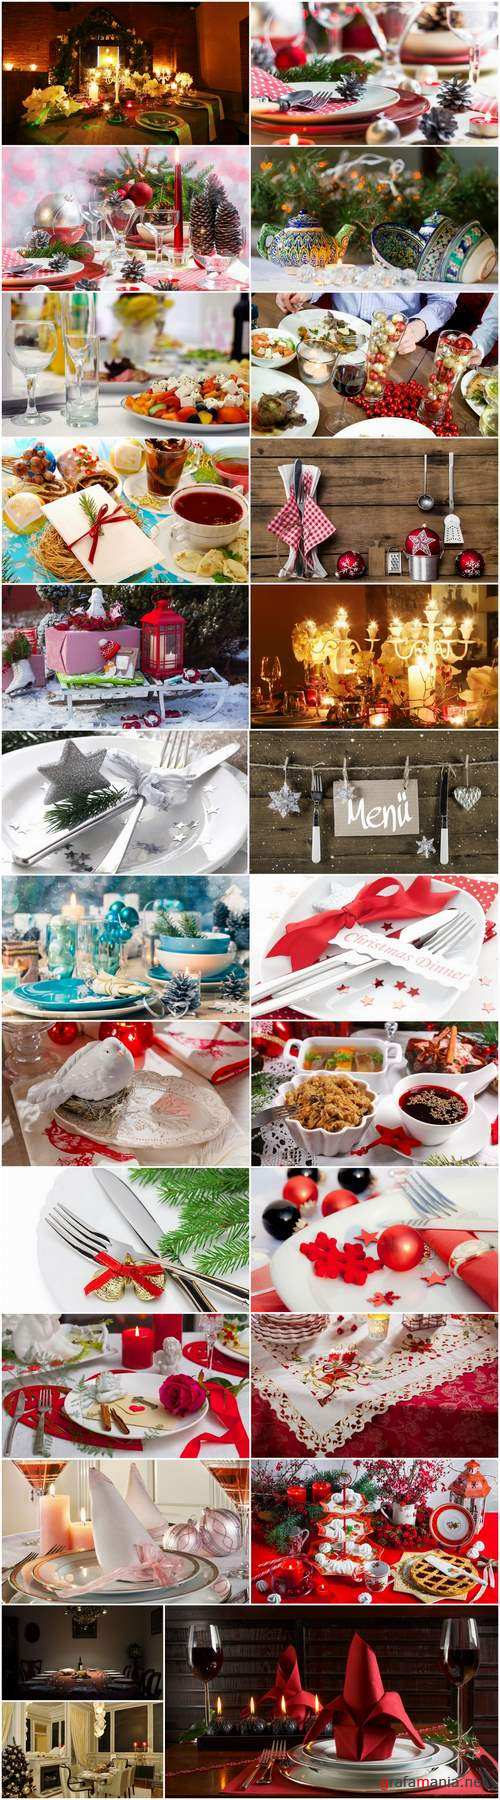 Table setting banquet celebration feast fork spoon table Pibor 25 HQ Jpeg